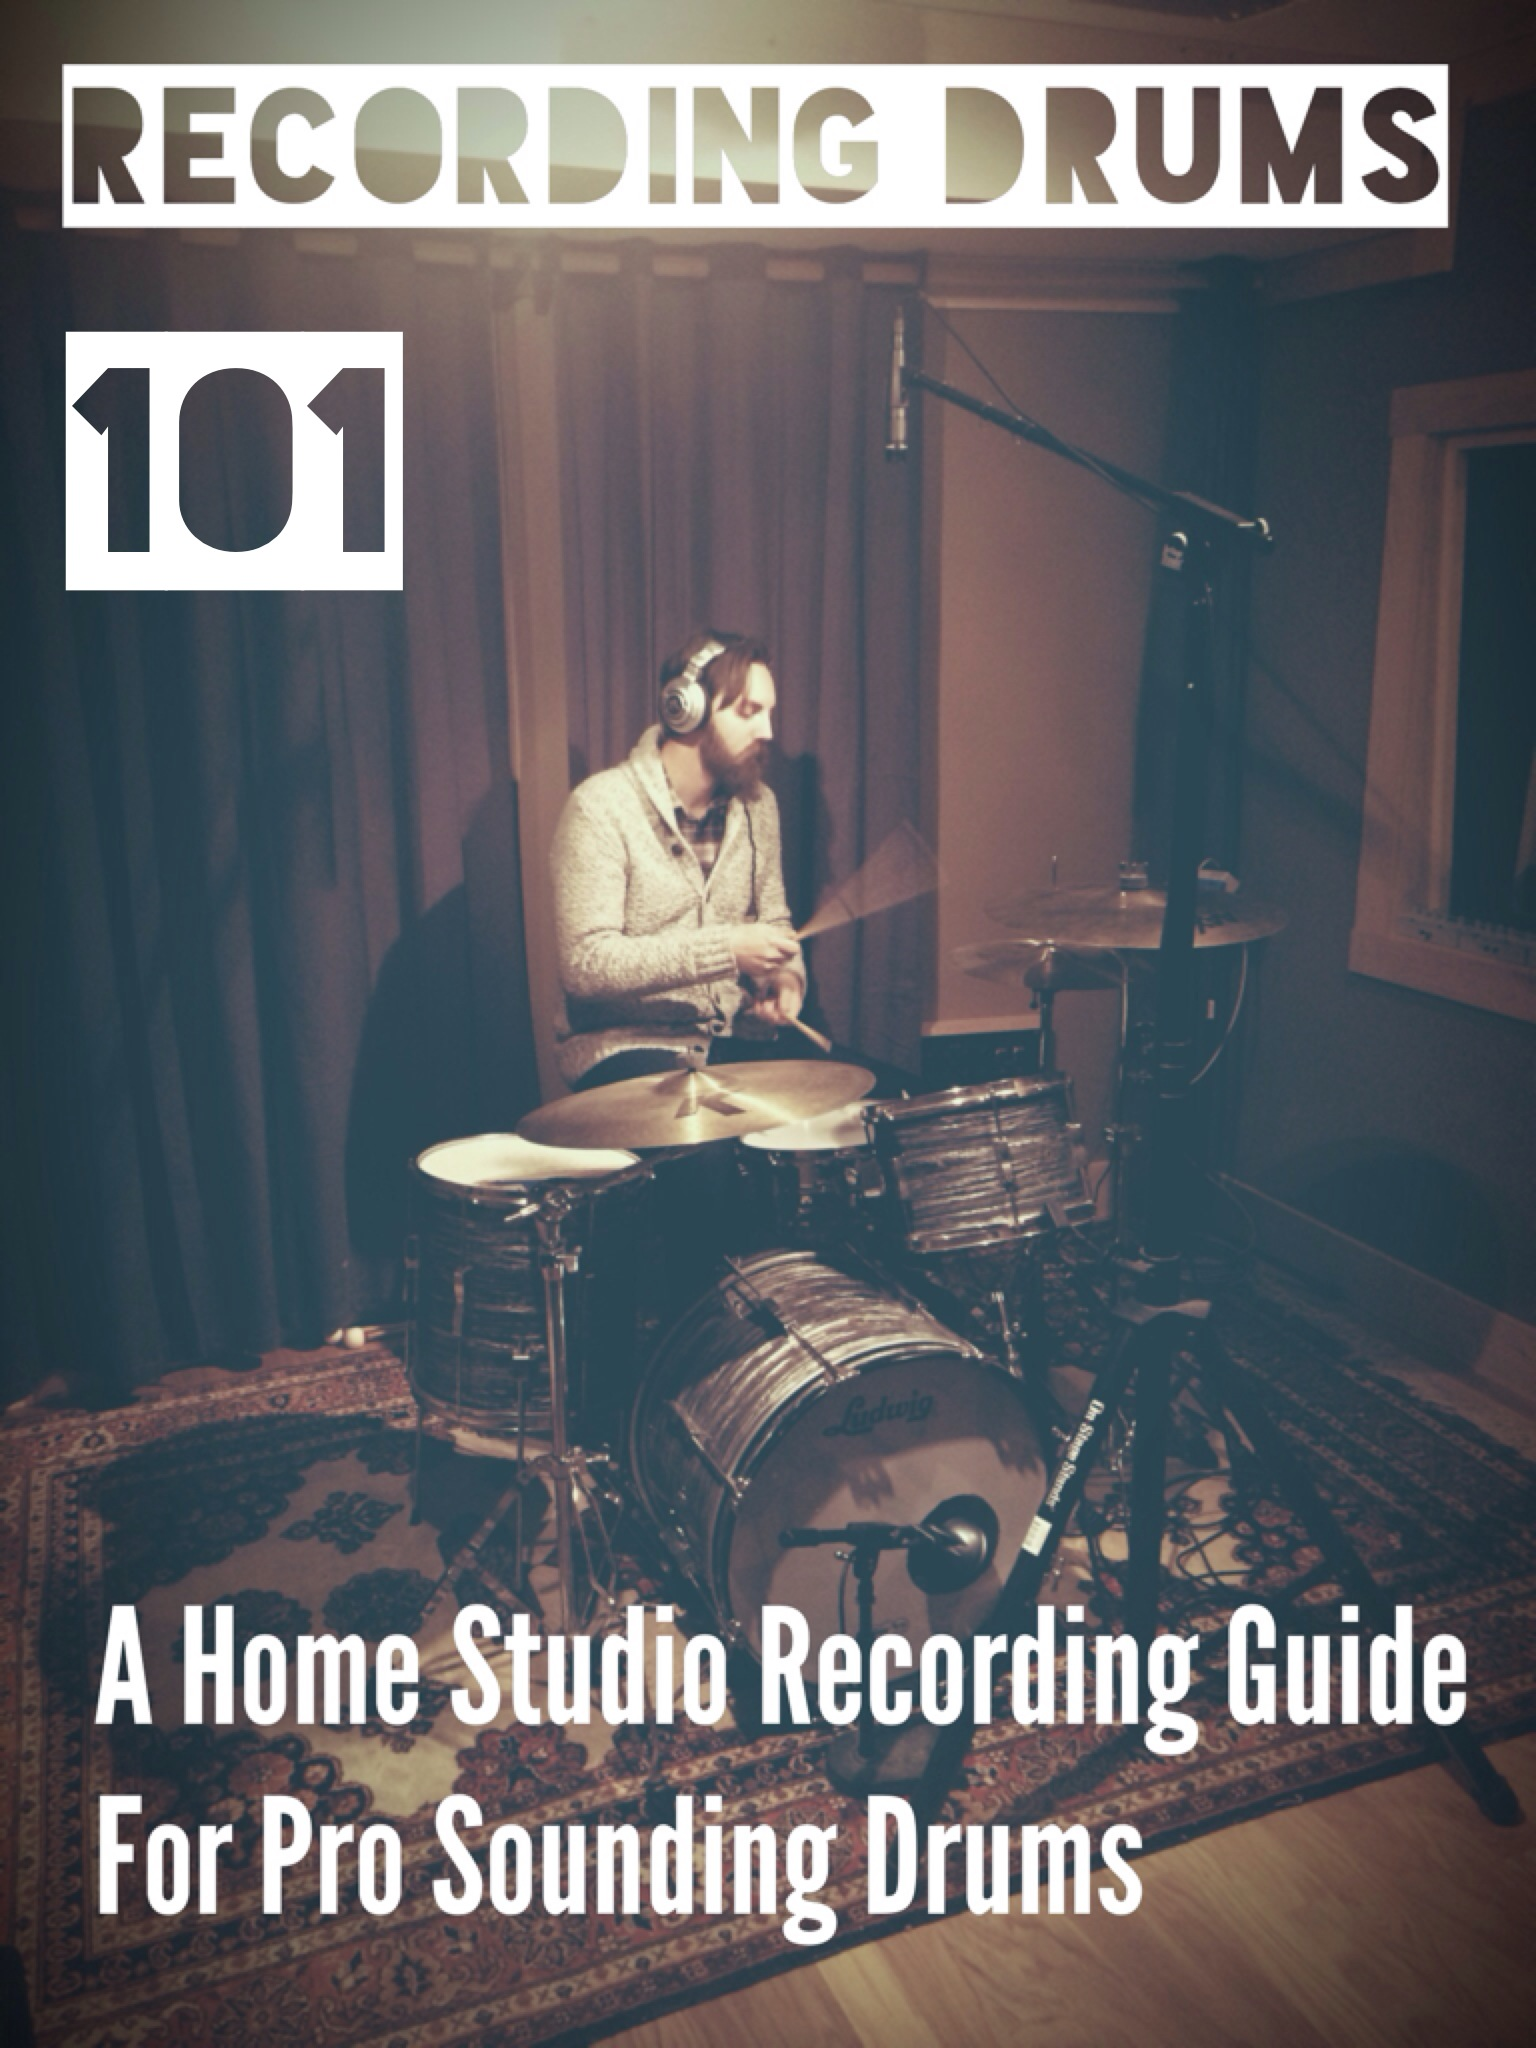 Recording Drums 101: A Home Studio Guide For Pro Sounding Drums